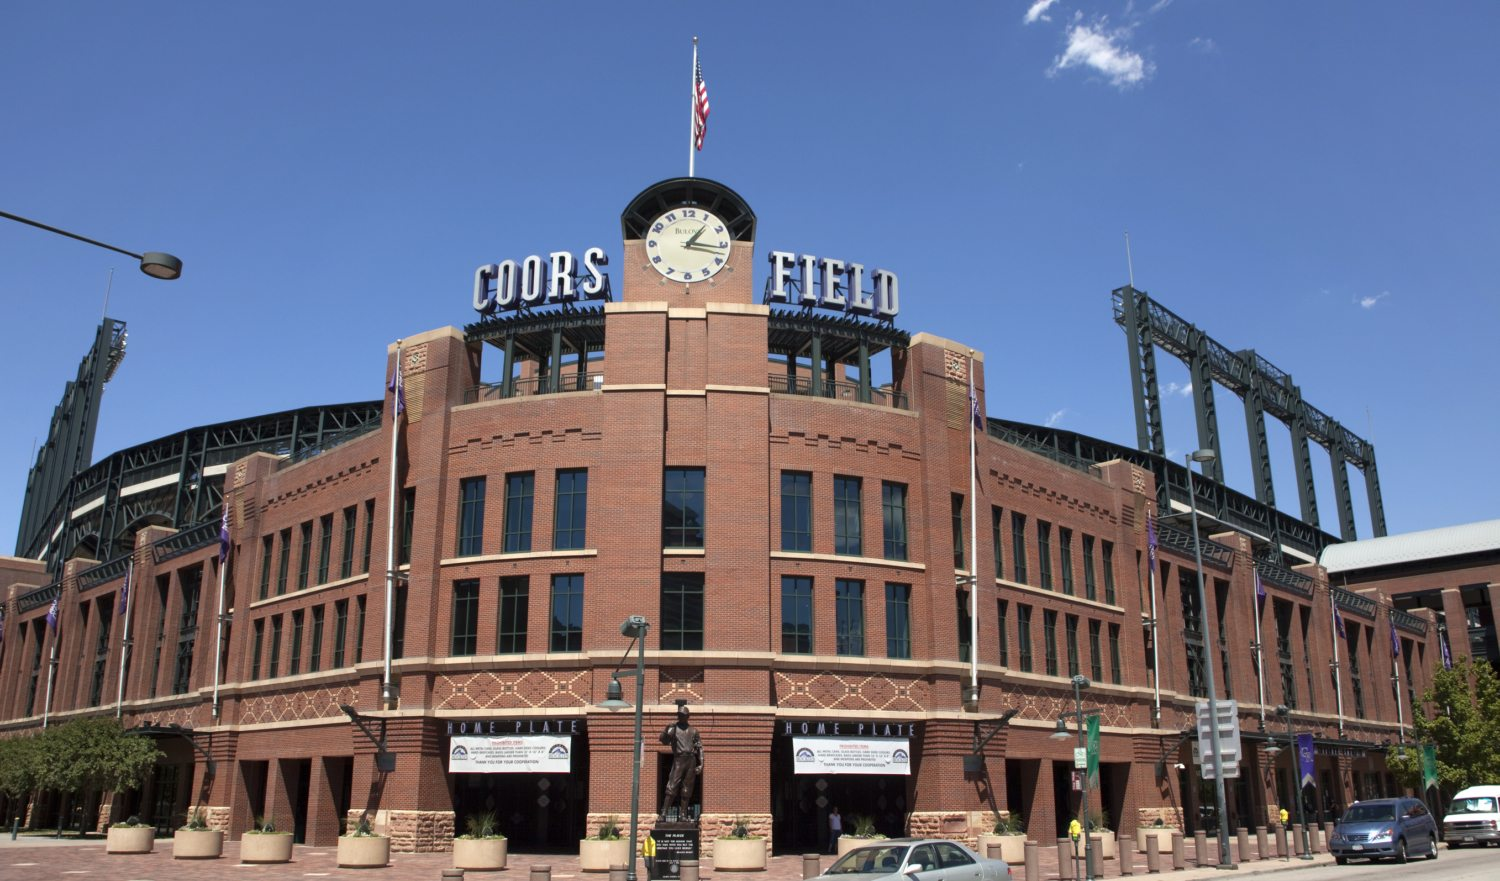 """Denver, Colorado, U.S.A. - August 15, 2011: The brick architecture of Coors Field baseball stadium stands under a blue sky in downtown Denver, Colorado."""